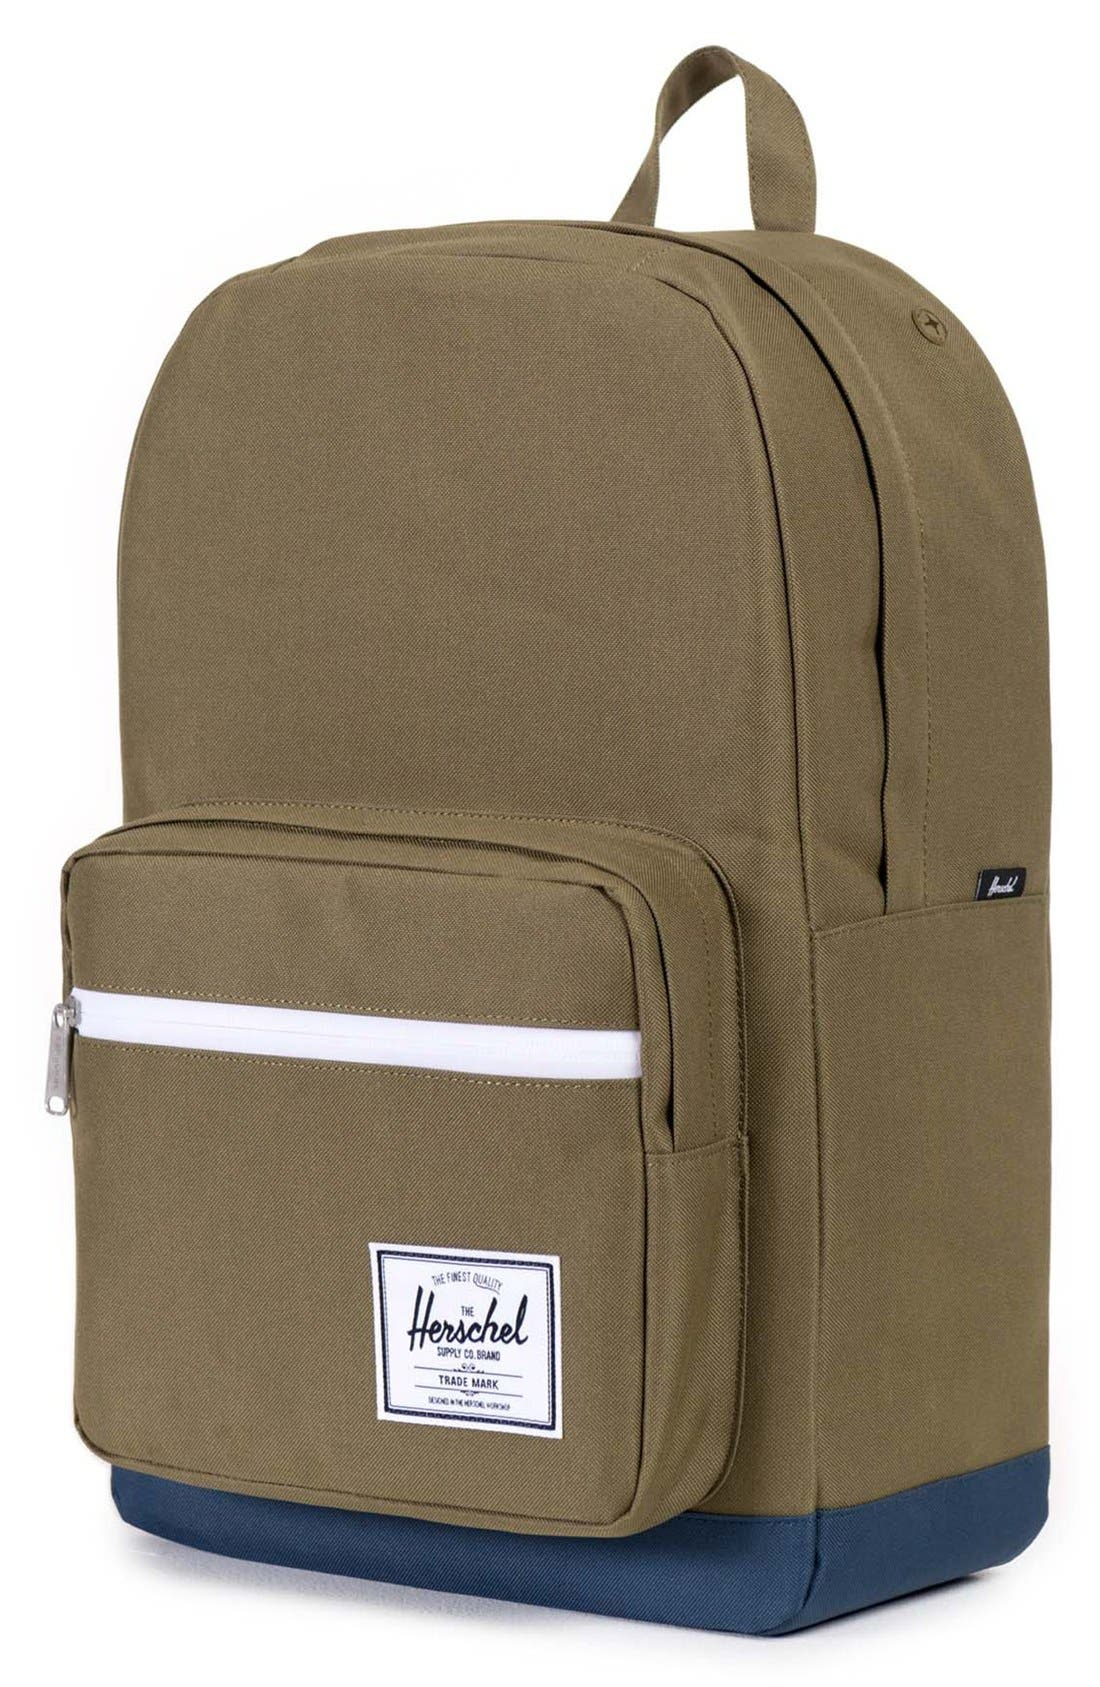 'Pop Quiz' Backpack,                             Alternate thumbnail 4, color,                             Army/ Navy